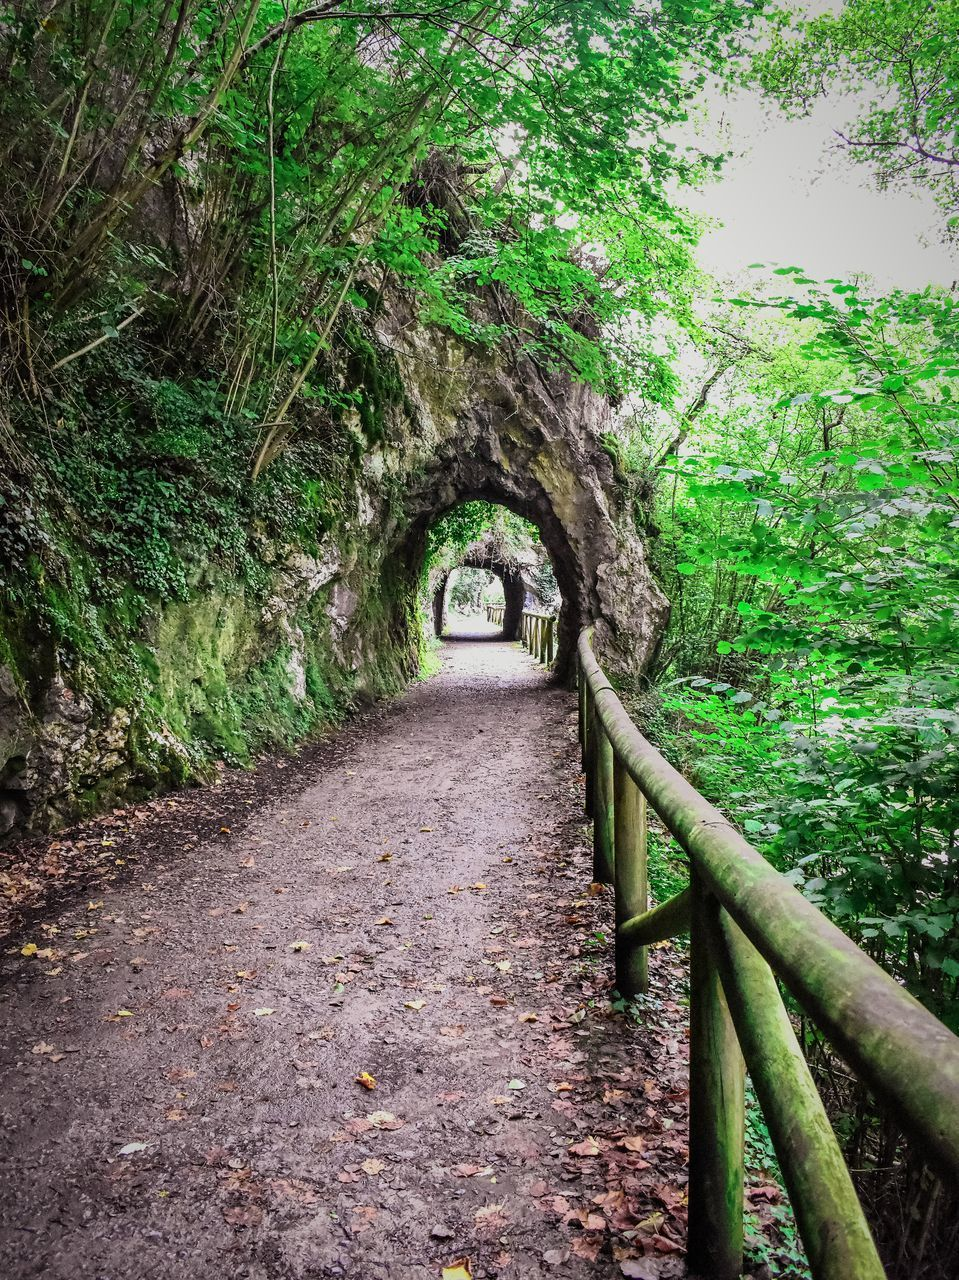 the way forward, tree, direction, plant, forest, growth, architecture, no people, nature, day, arch, green color, tranquility, connection, footpath, railing, land, diminishing perspective, bridge, beauty in nature, outdoors, long